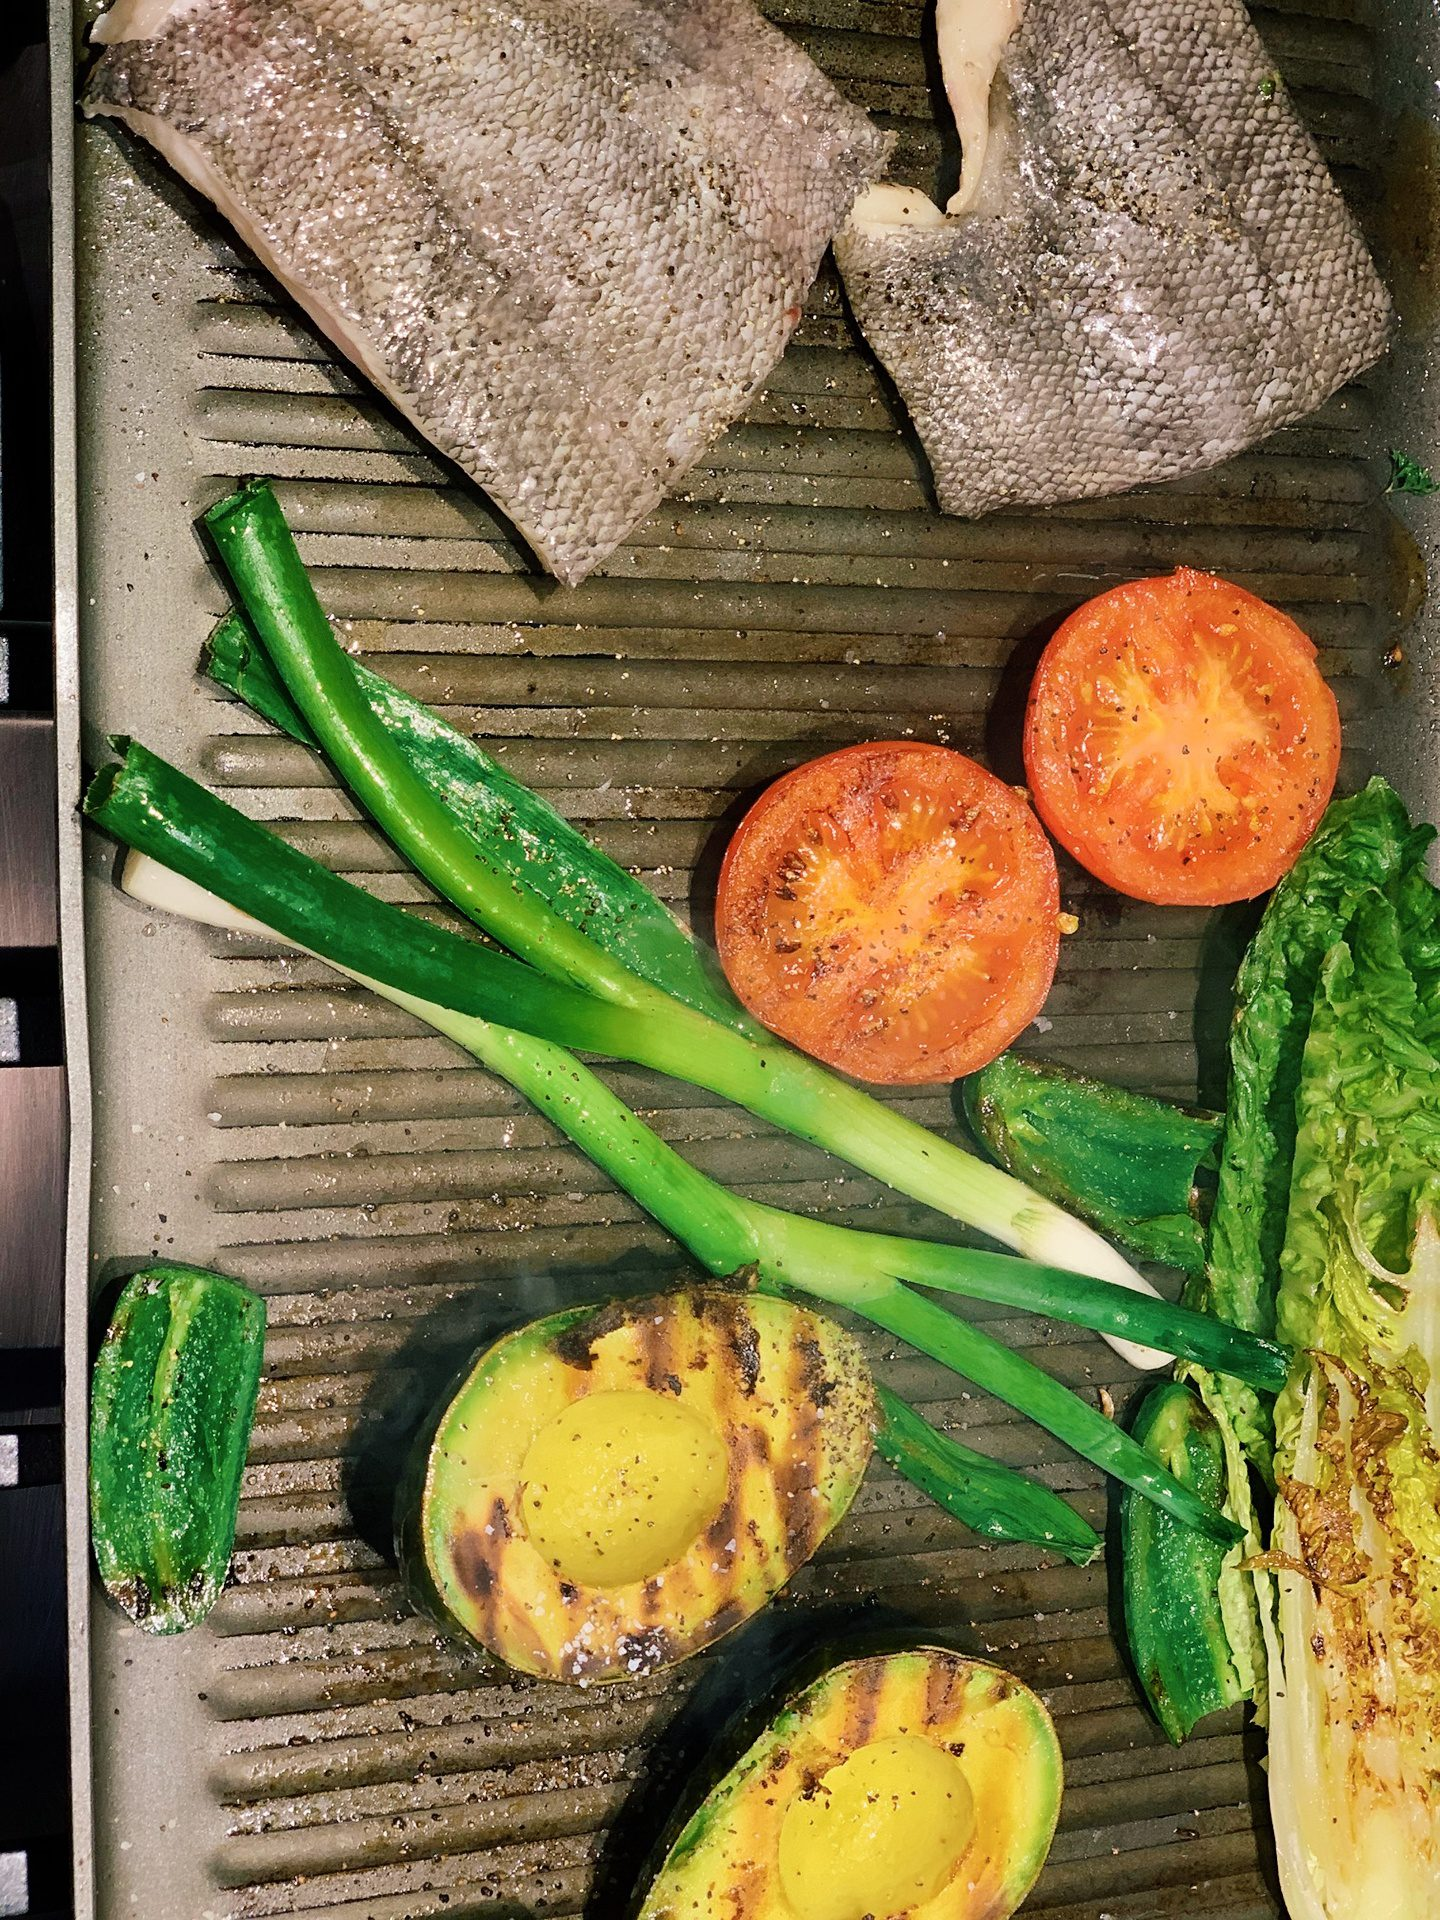 Veggies on grill pan with fish